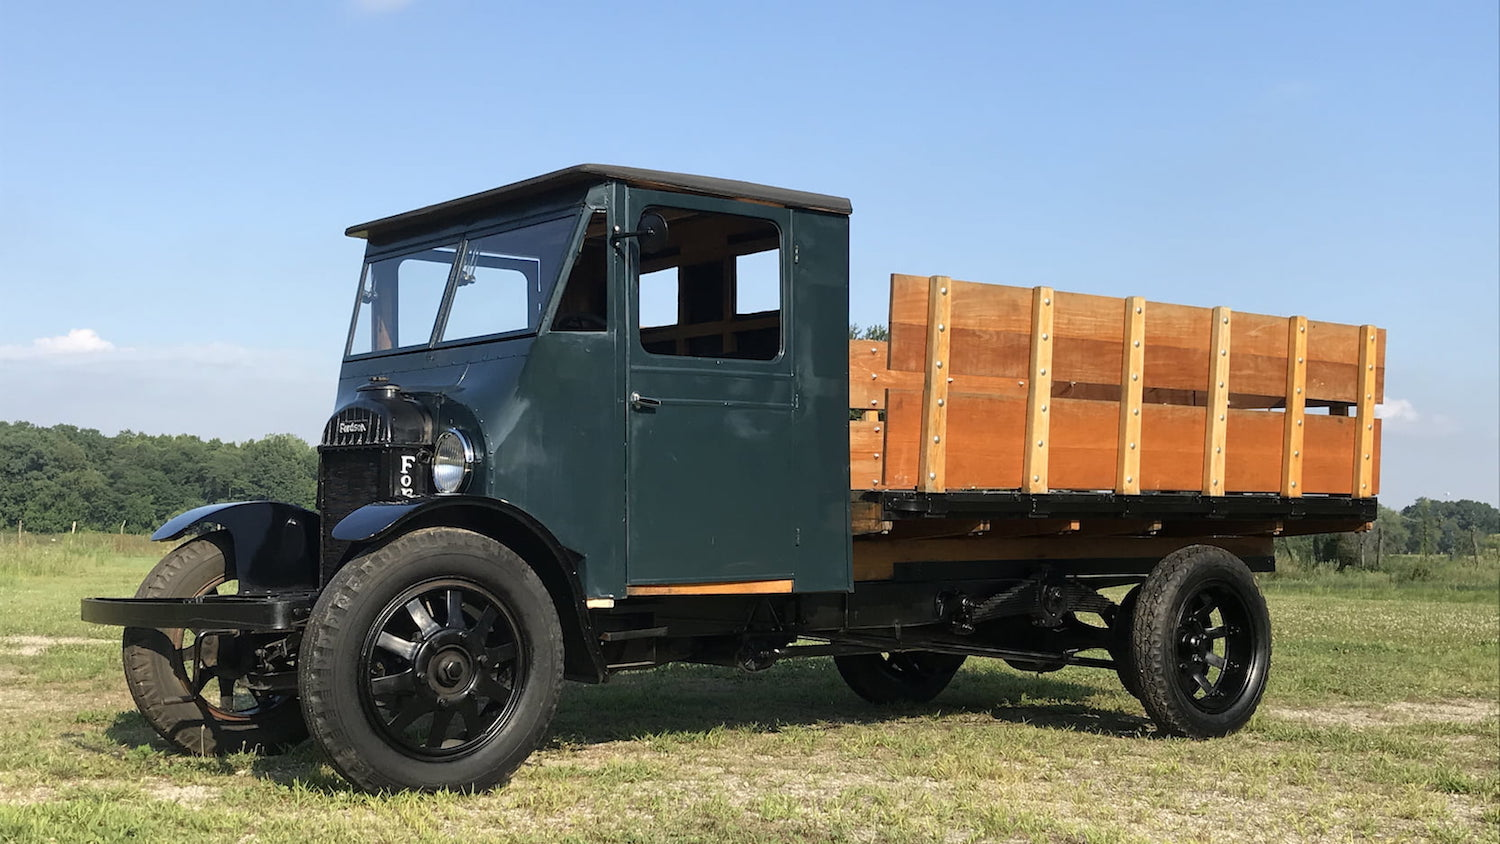 Best known for tractors, Fordson produced this badass truck, too